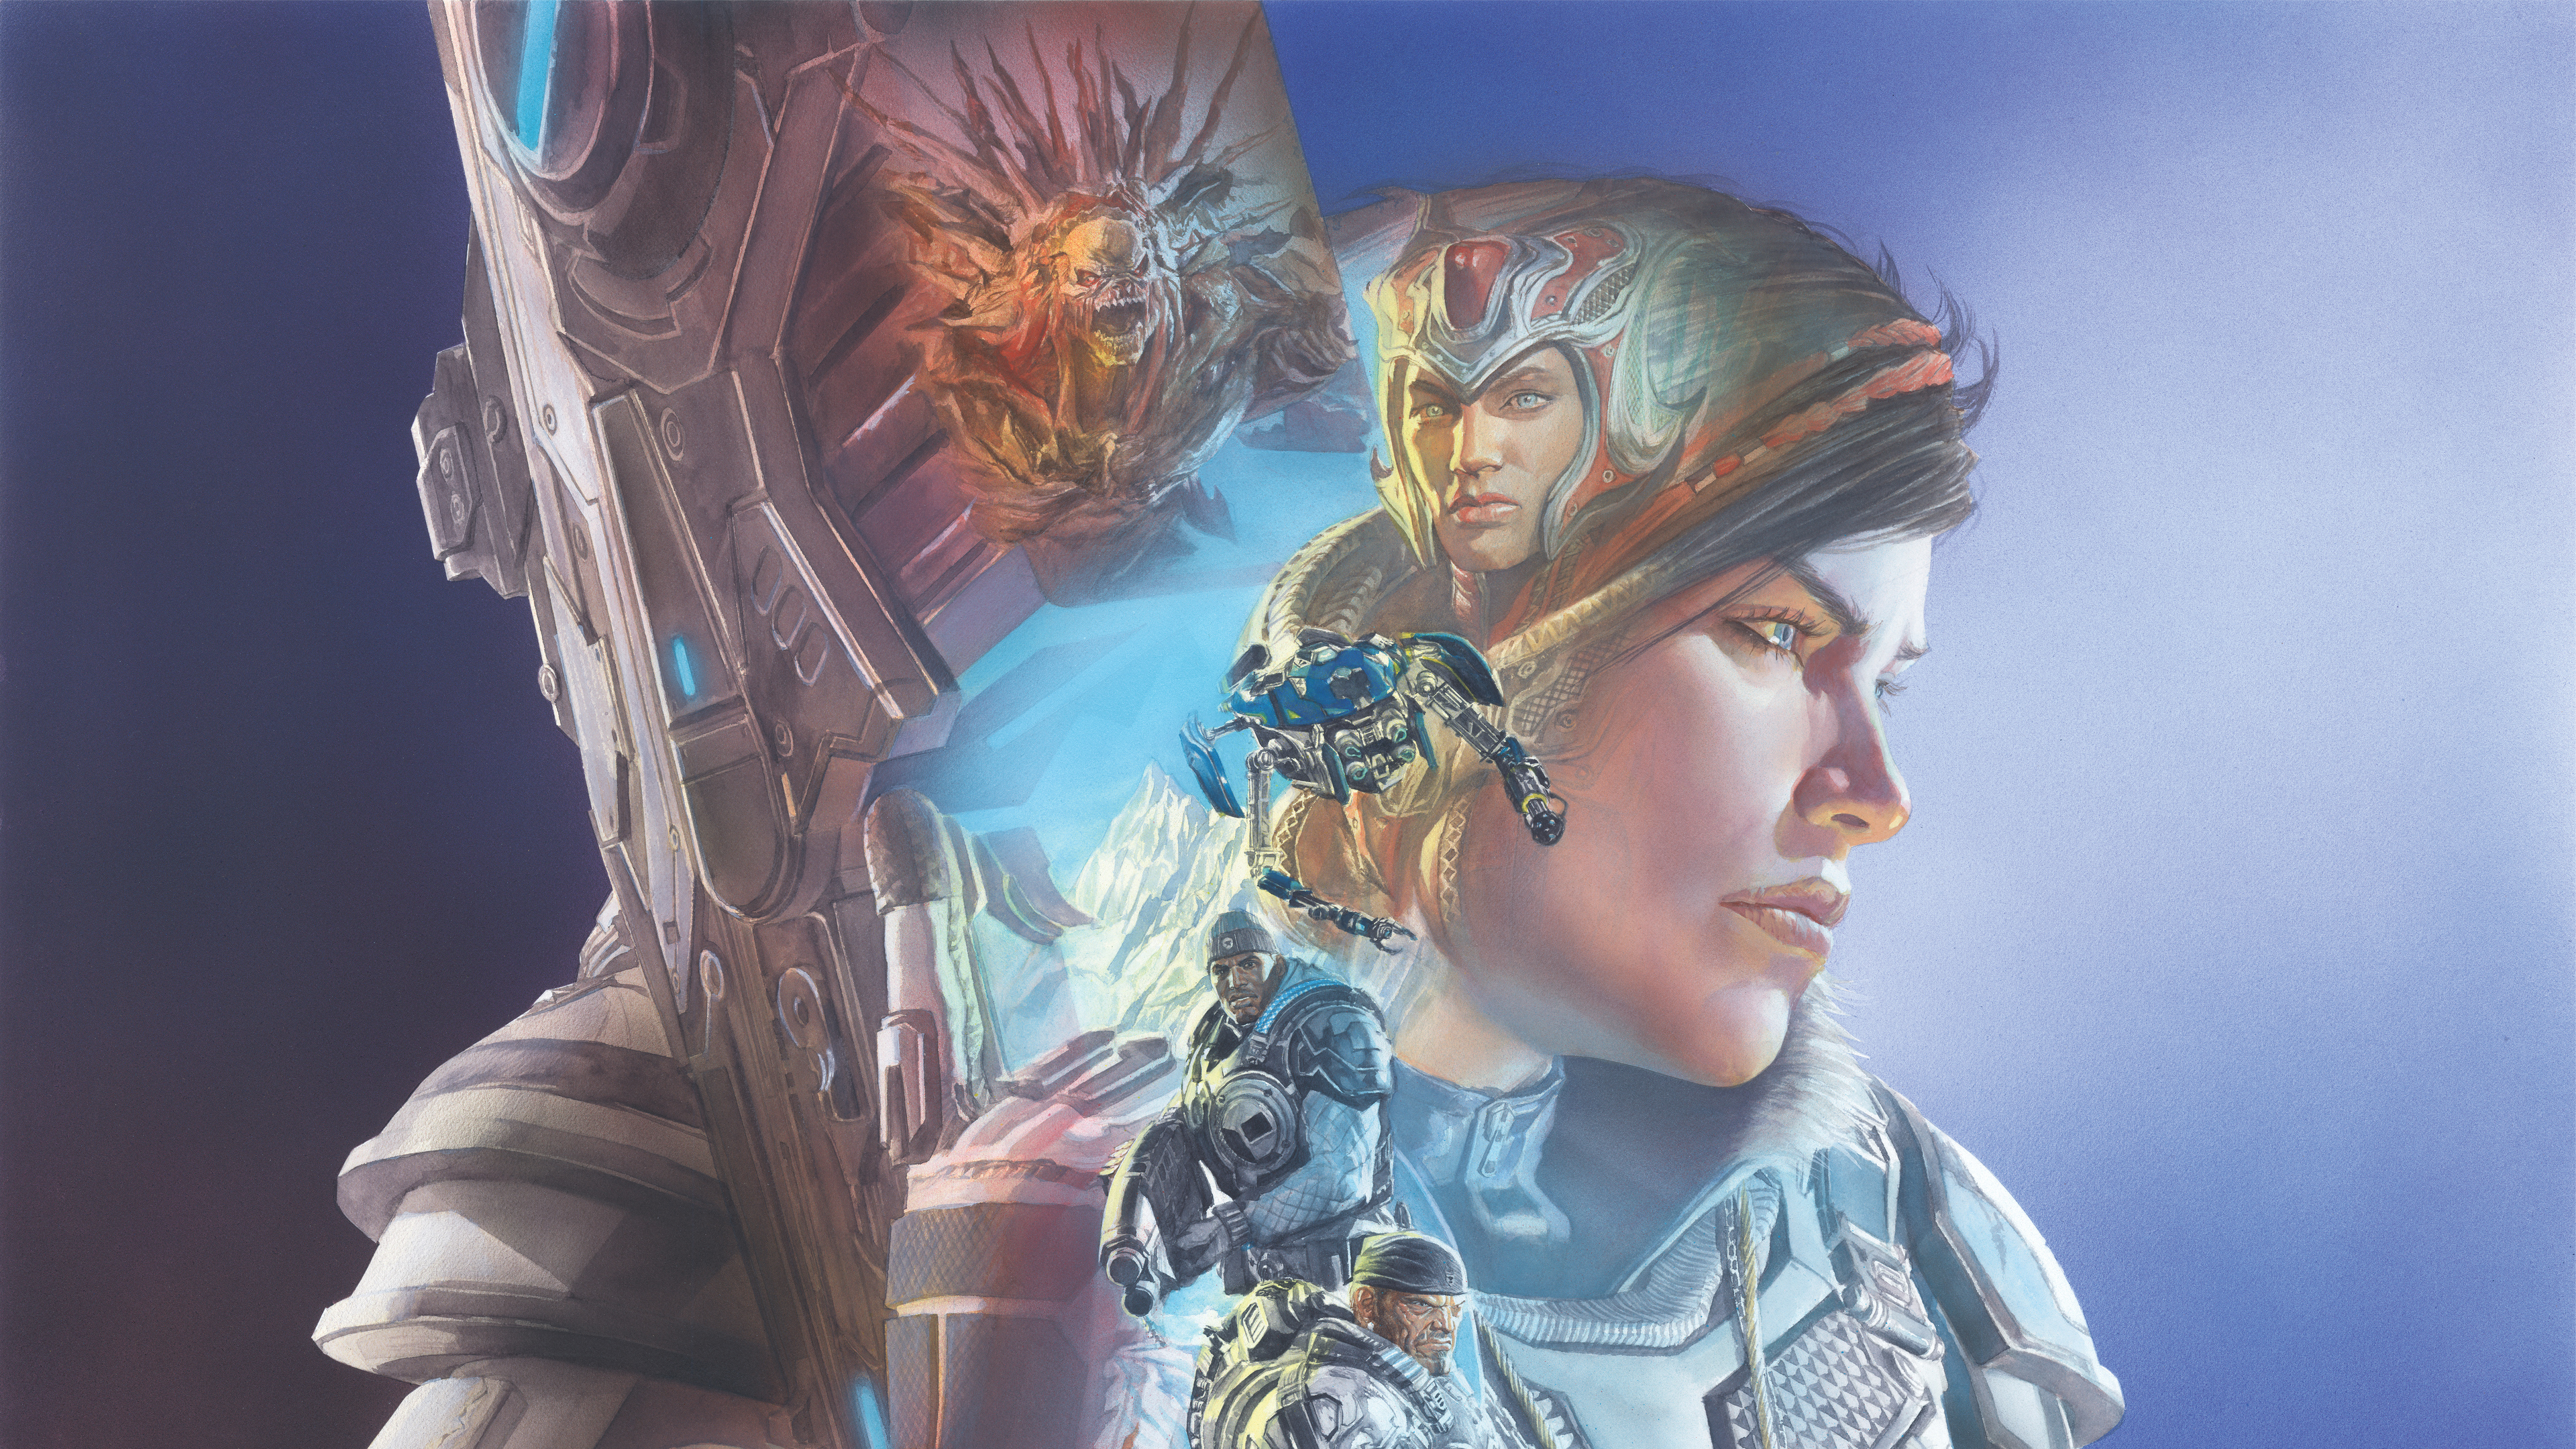 alex ross gears 5 1568056989 - Alex Ross Gears 5 - hd-wallpapers, gears of war wallpapers, gears of war 5 wallpapers, gears 5 wallpapers, games wallpapers, 8k wallpapers, 5k wallpapers, 4k-wallpapers, 2019 games wallpapers